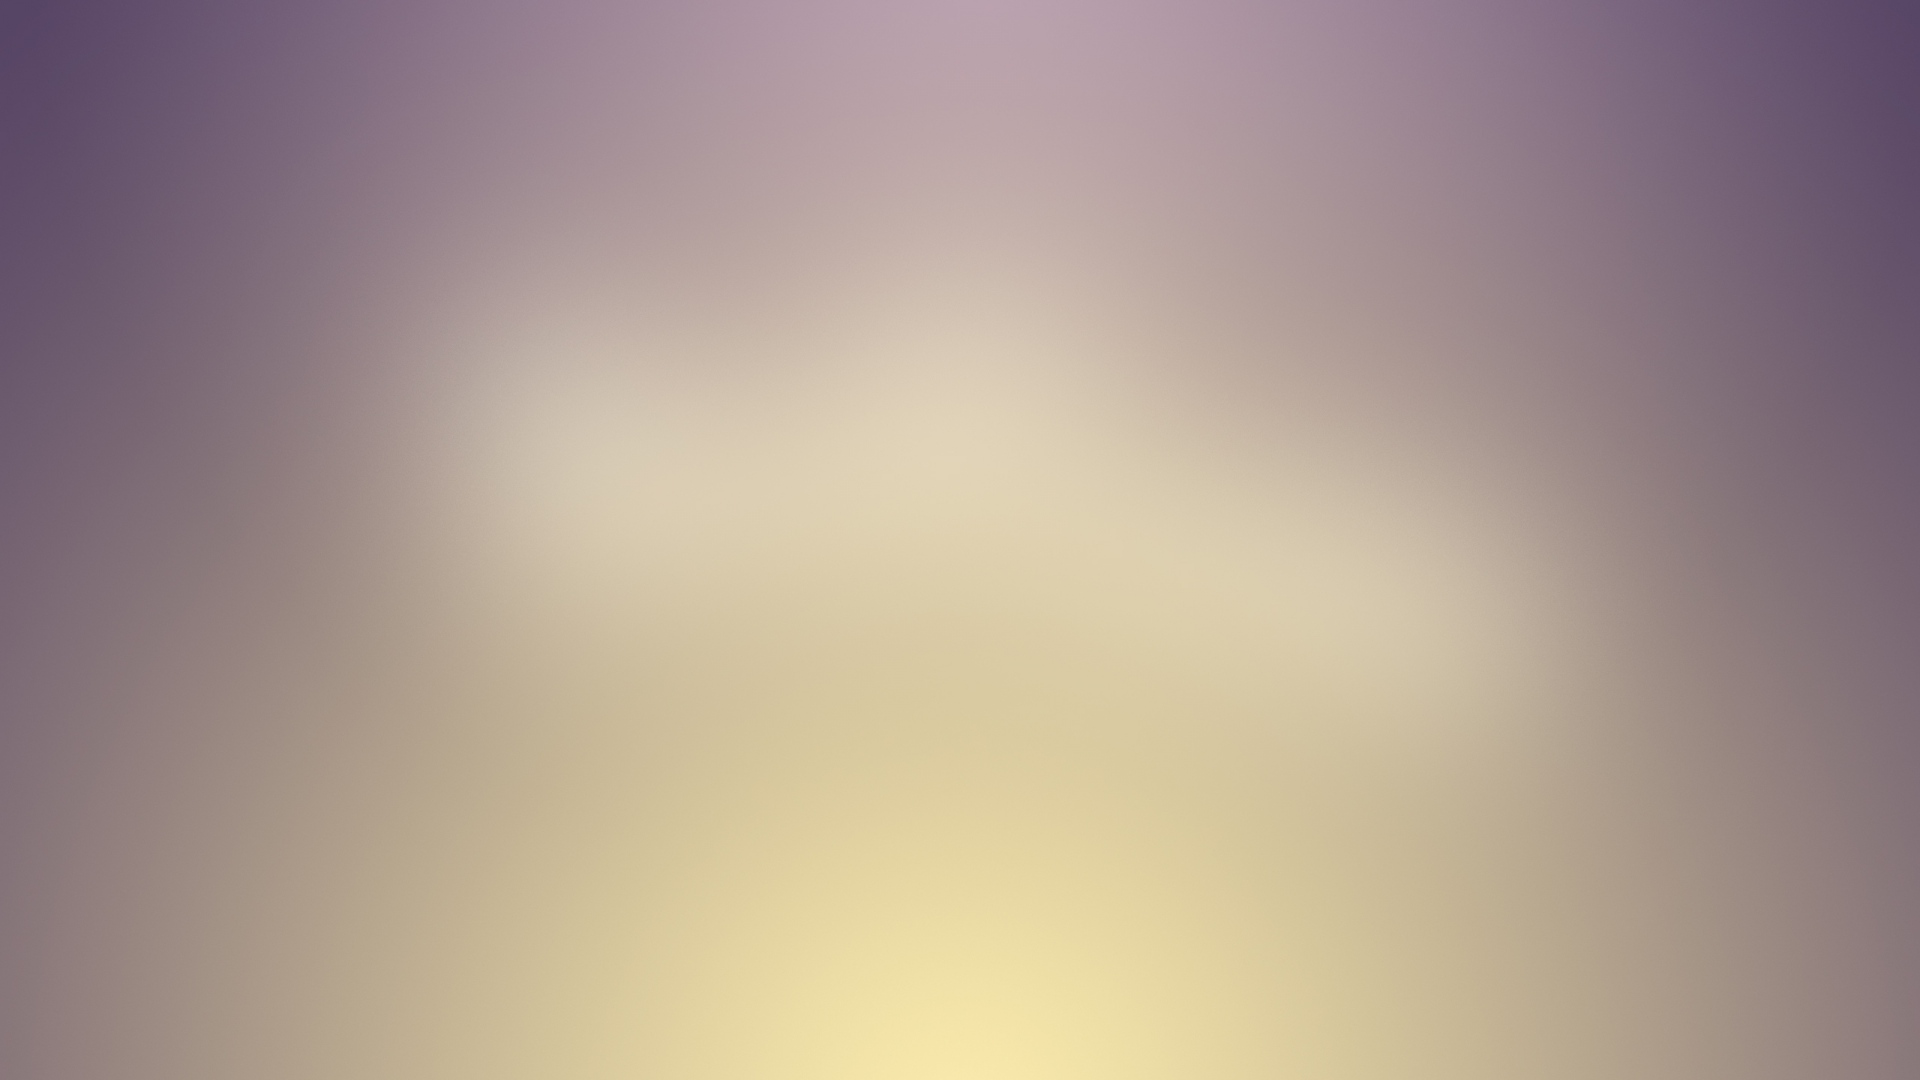 Earnings Disclaimer >> Download Wallpaper 1920x1080 background, solid, faded Full ...